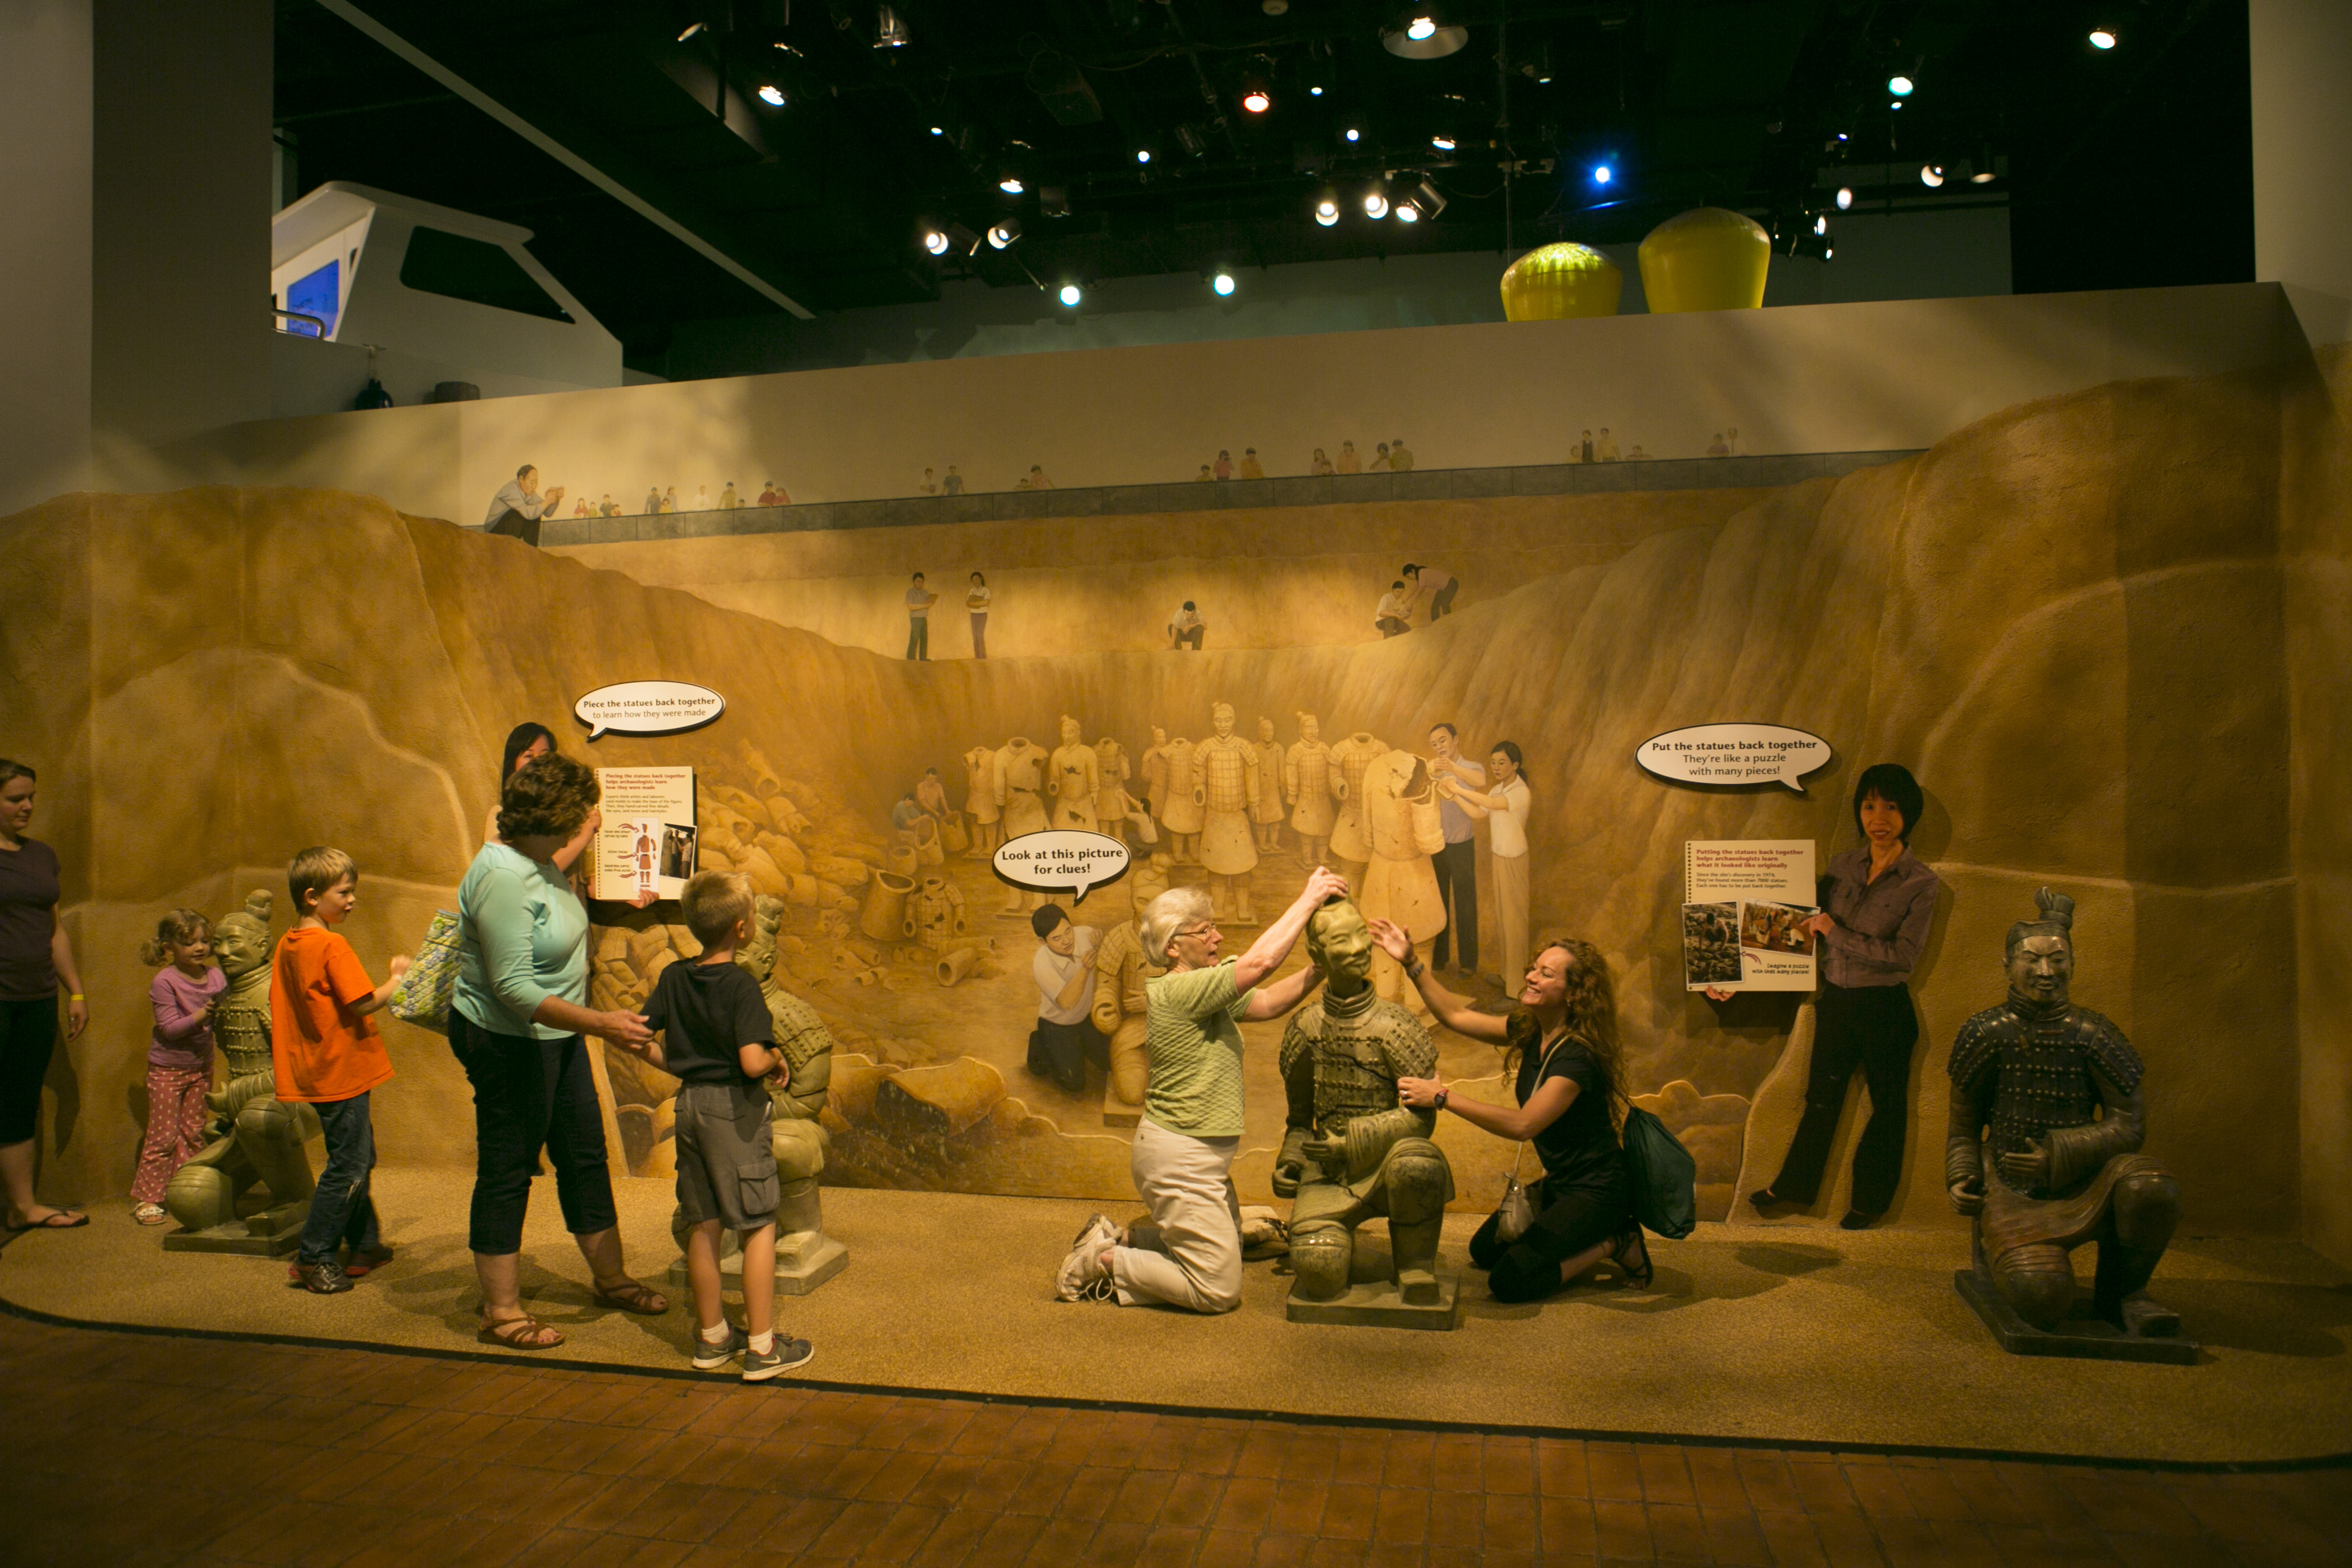 Indianpolis_Childrens_Museum-001_26